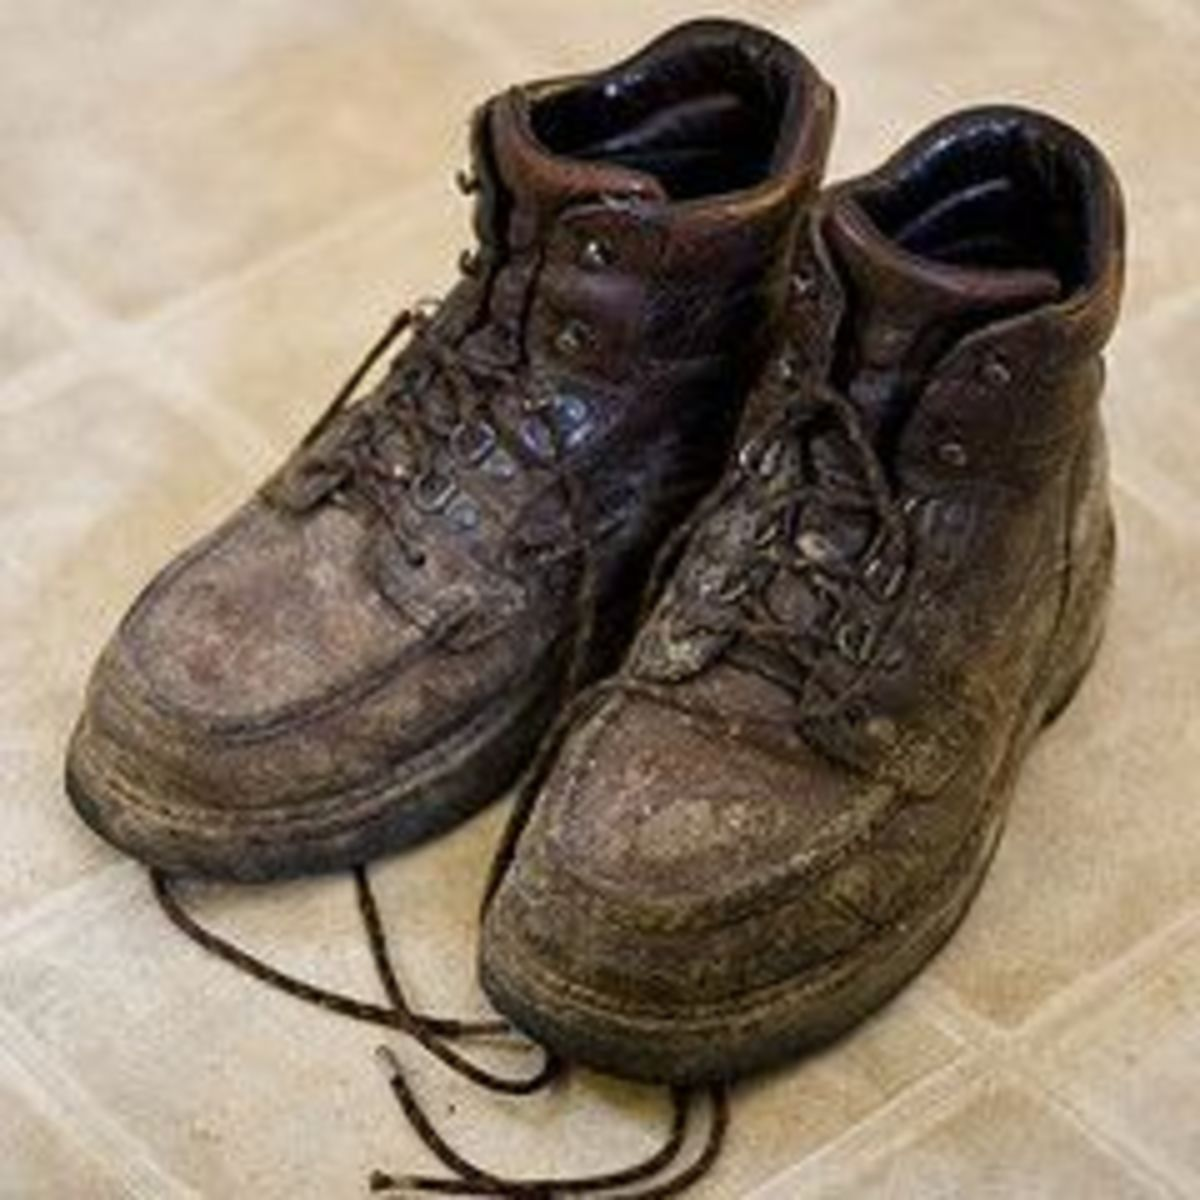 This is the sexiest pair of shoes I've ever seen a man wear. Look at all that delicious mud! If these are your shoes please say hi in the comments!